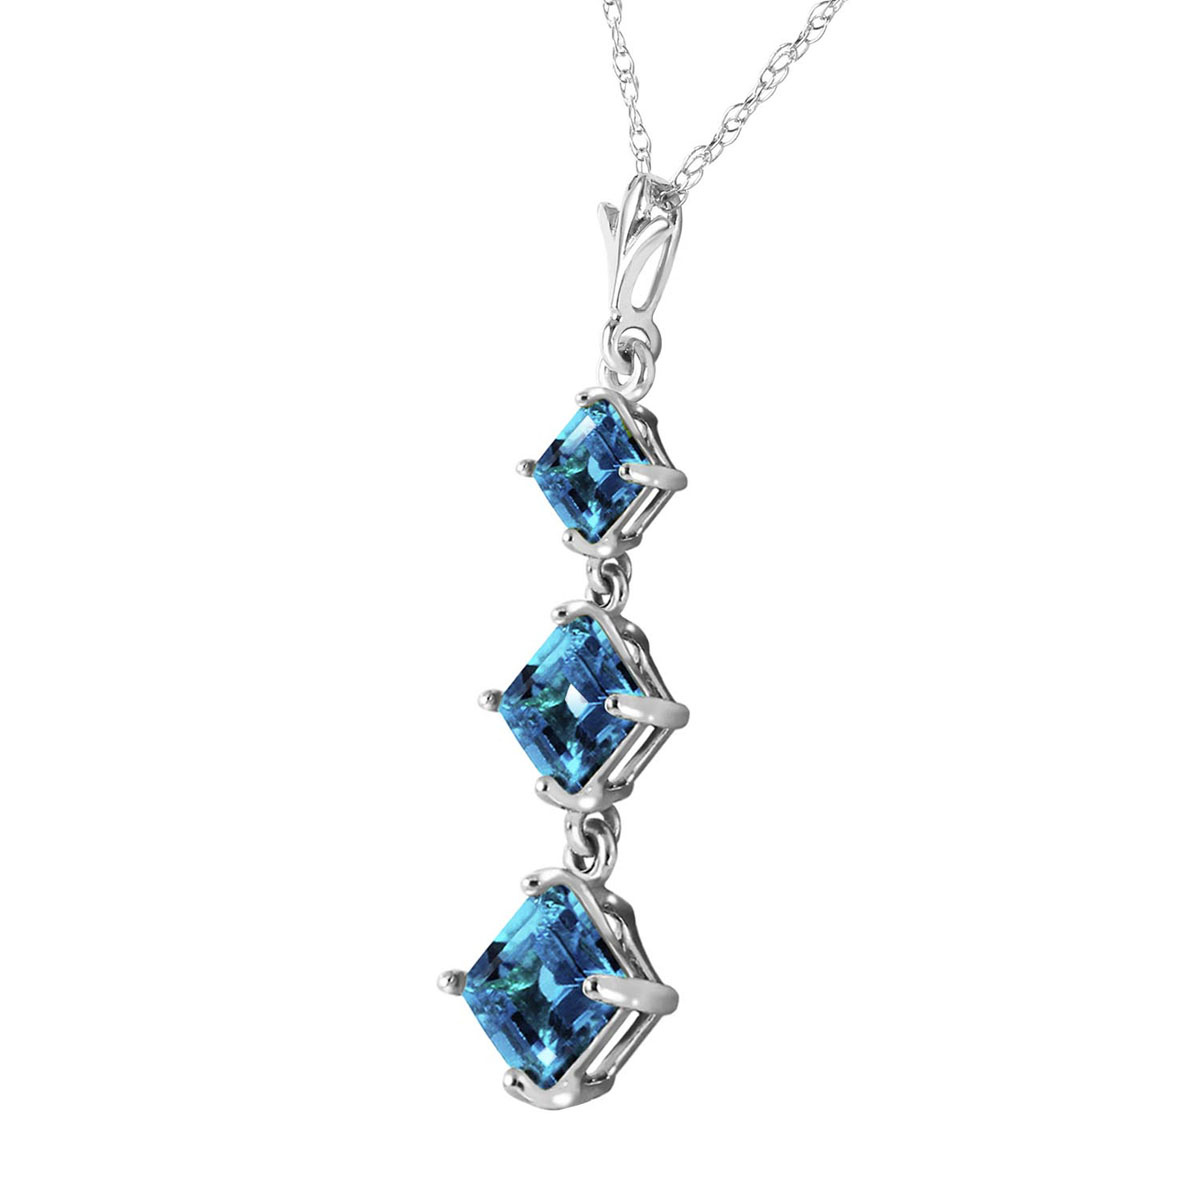 Blue Topaz Three Stone Pendant Necklace 2.4 ctw in 9ct White Gold